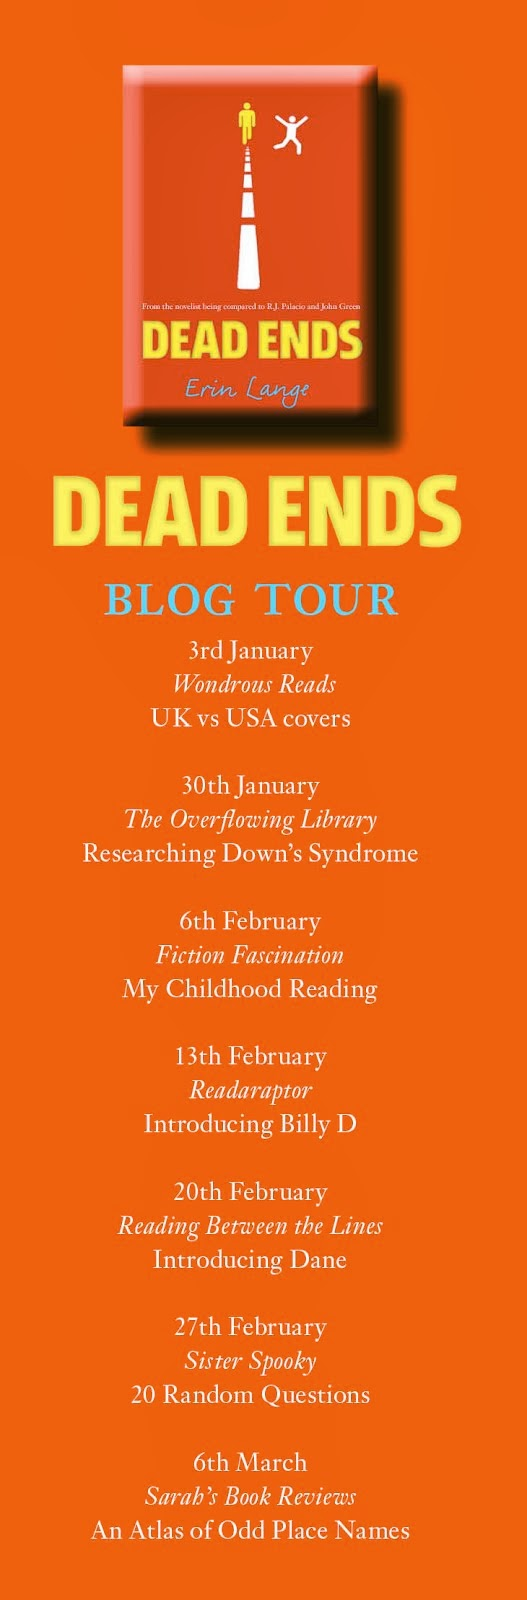 Dead Ends Blog tour